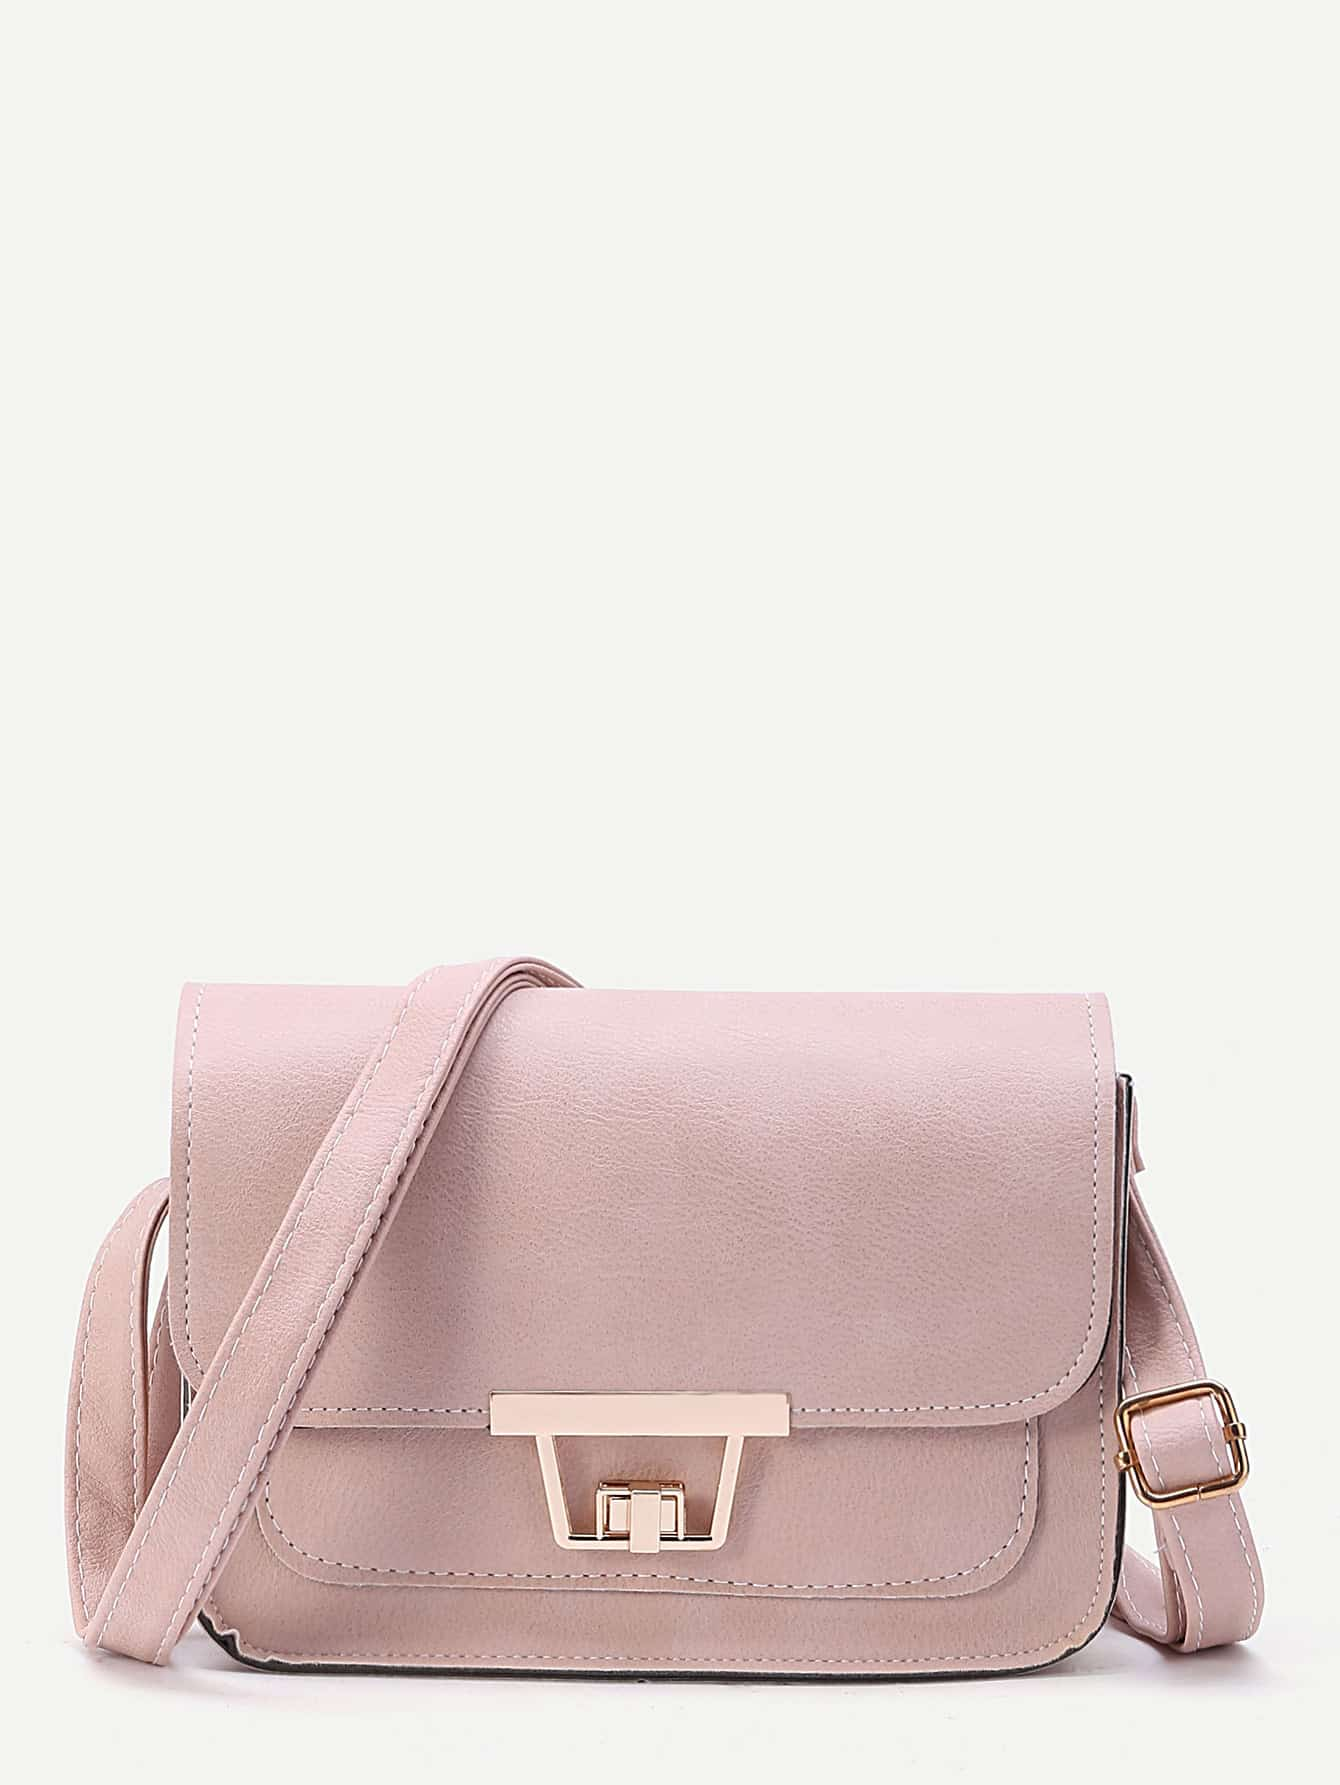 Twist Lock Flap Crossbody Bag